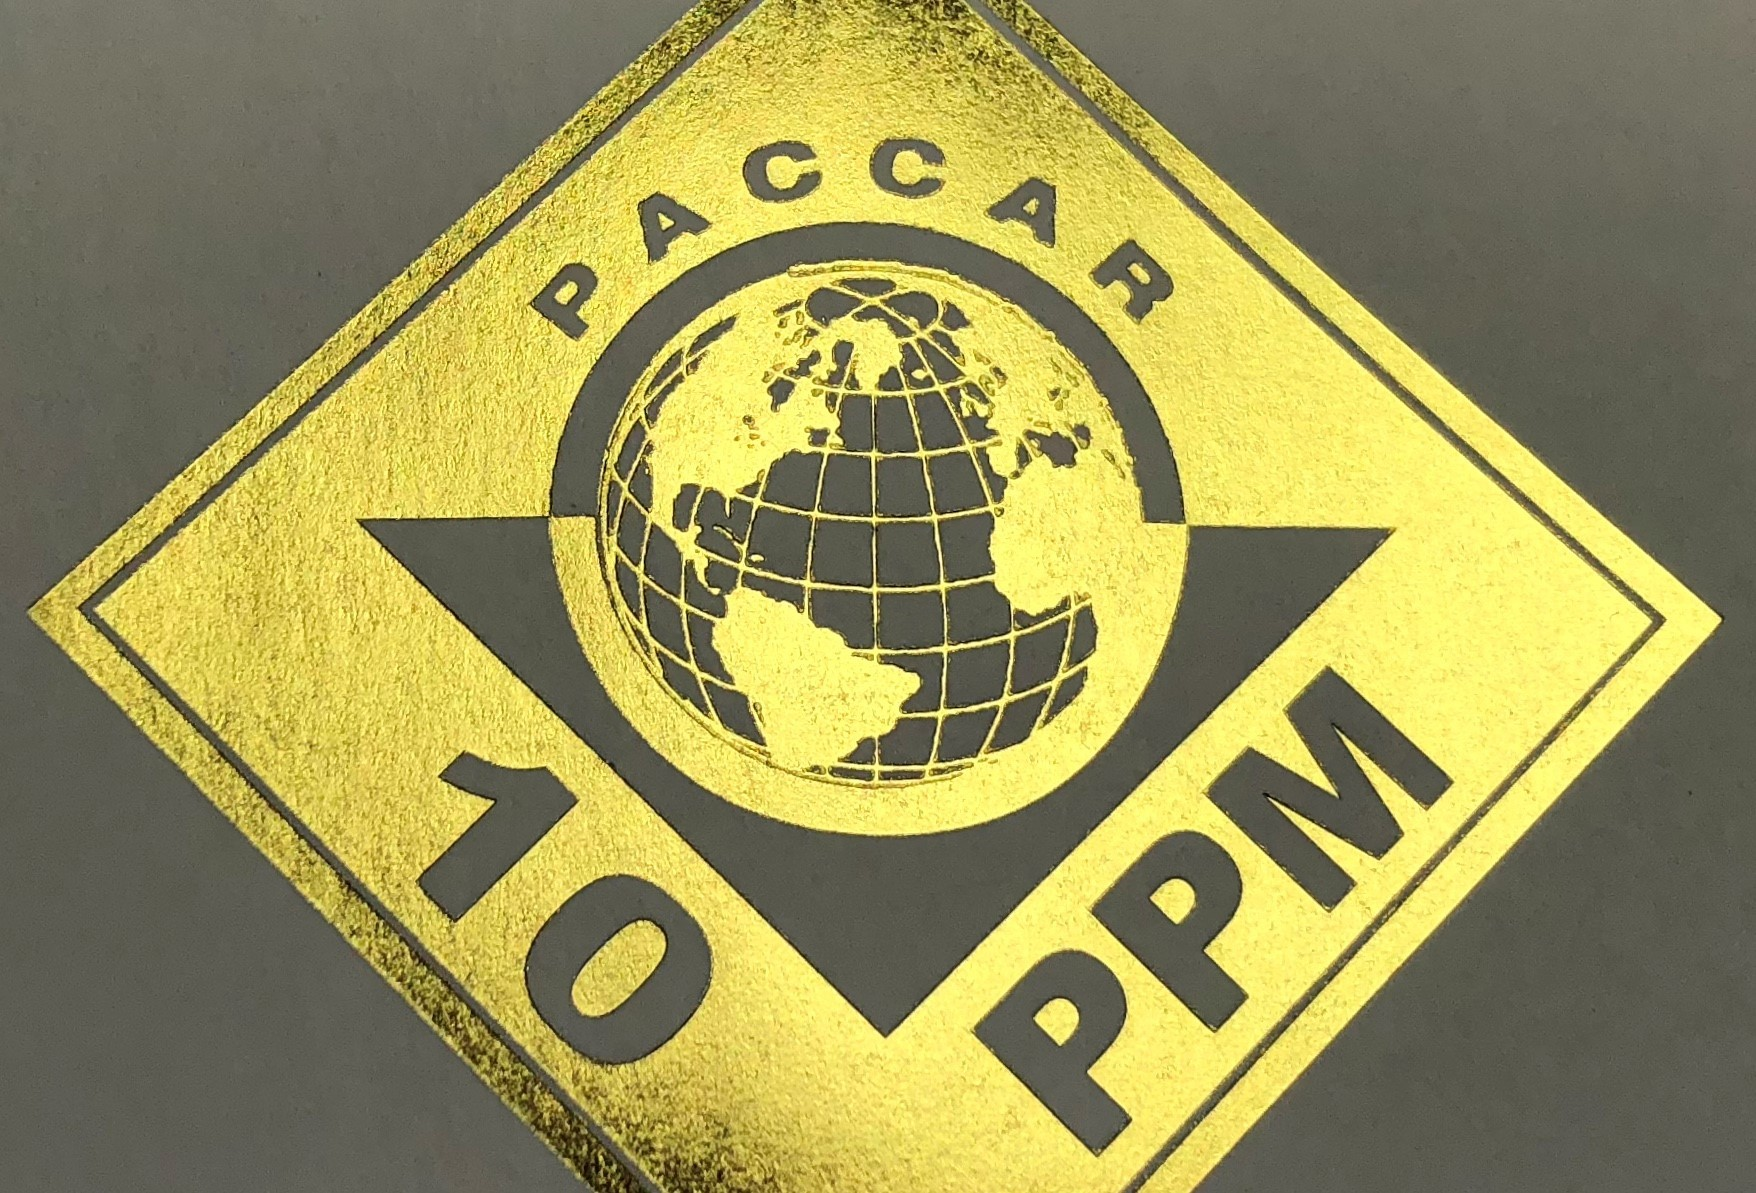 Paccar 10PPM award